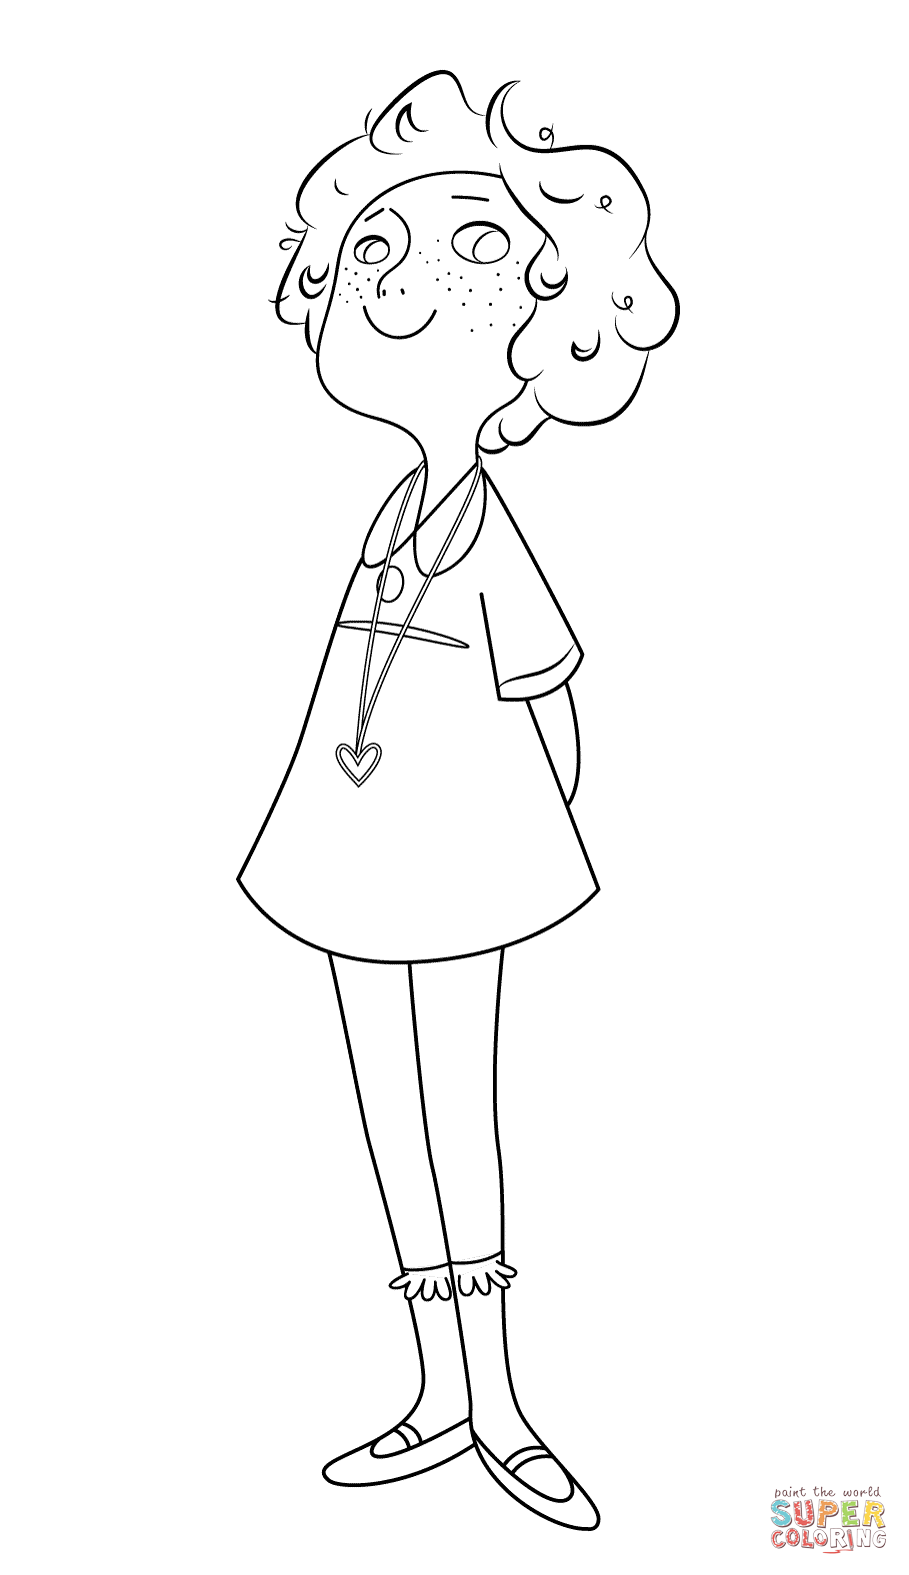 little orphan annie coloring pages little orphan annie coloring pages coloring home orphan pages little coloring annie